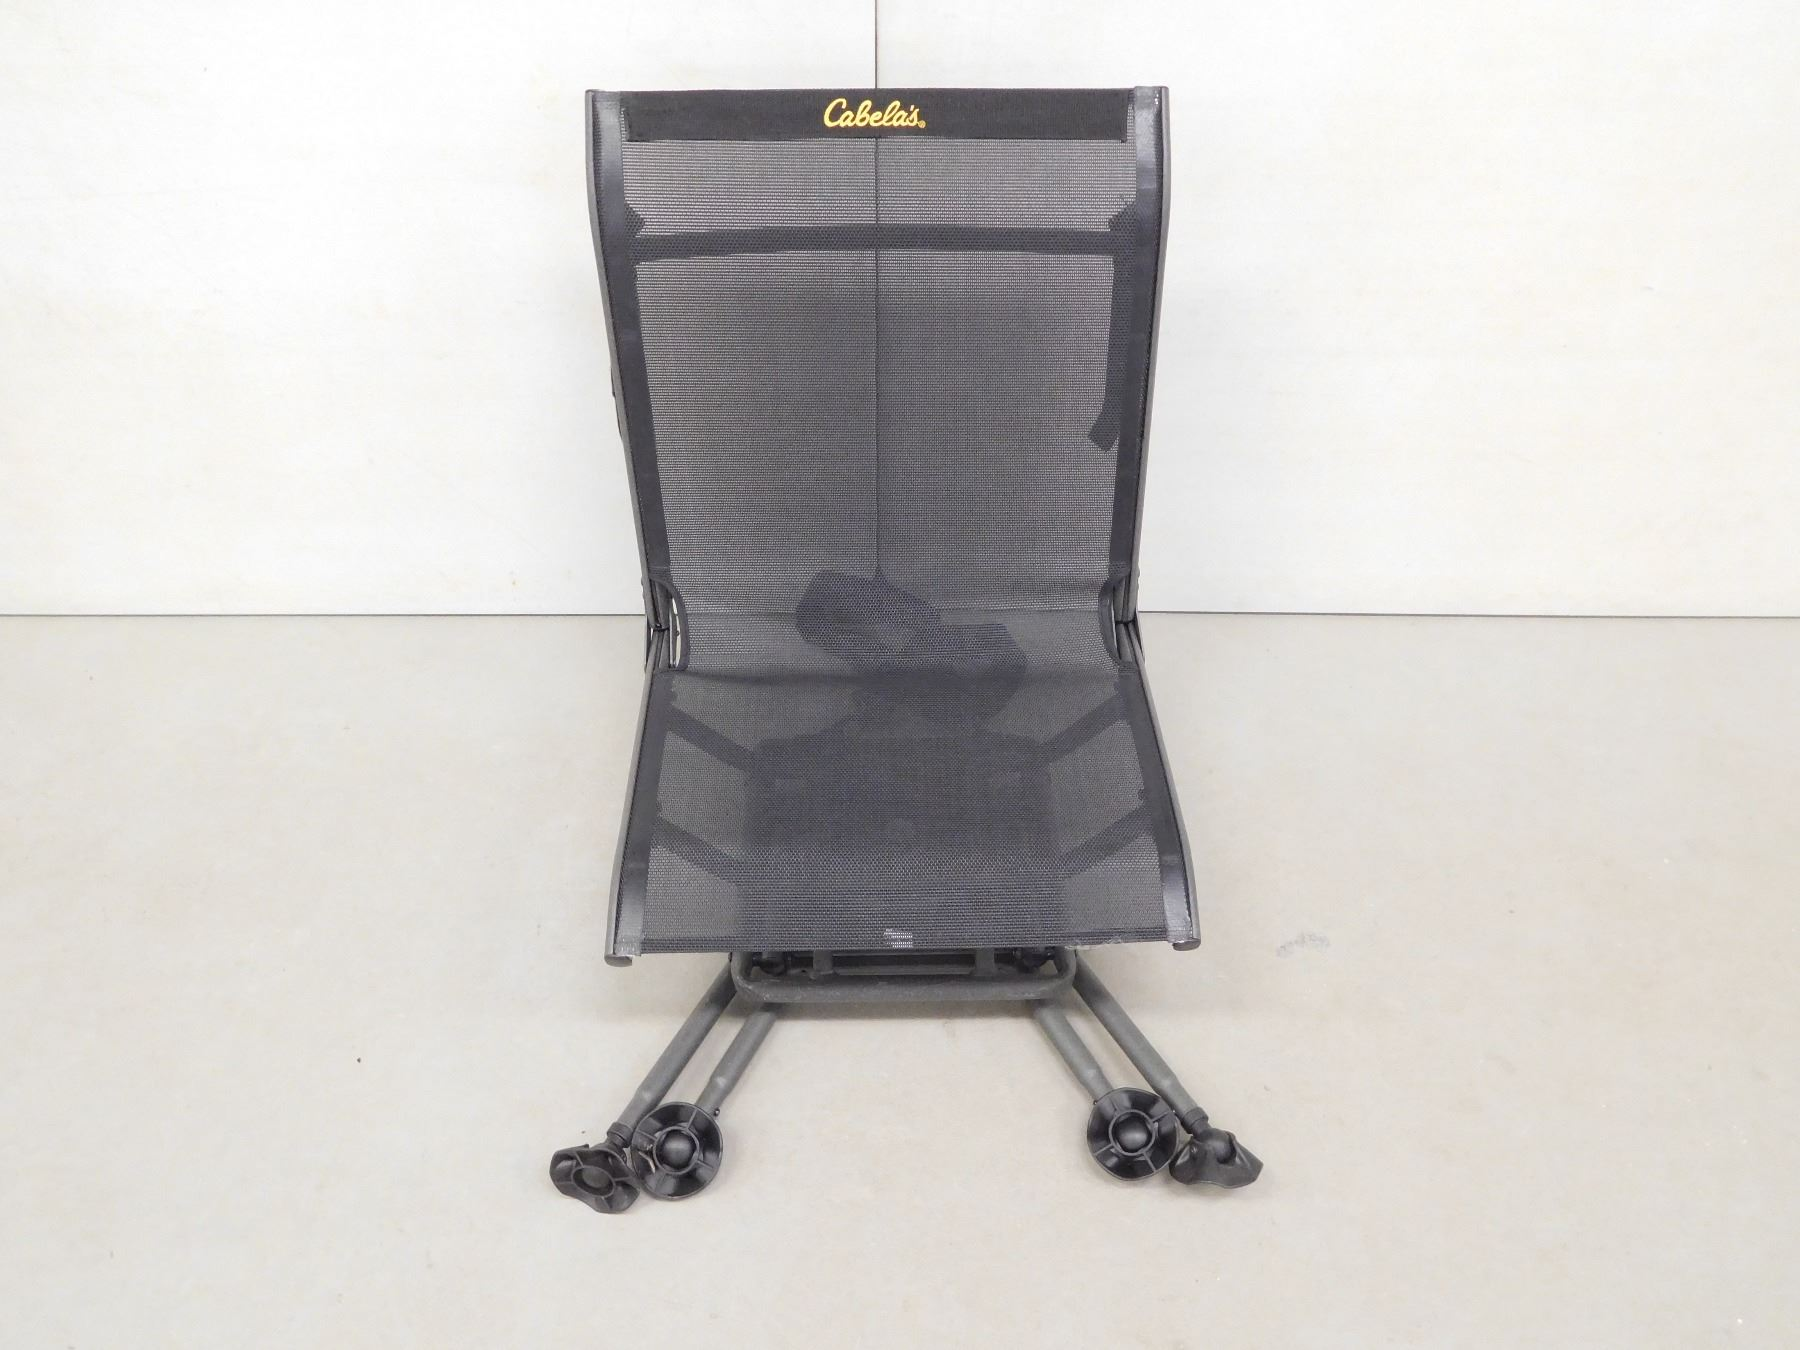 Image 1  CABELAS FOLDING CHAIR ... : cabelas folding chairs - Cheerinfomania.Com